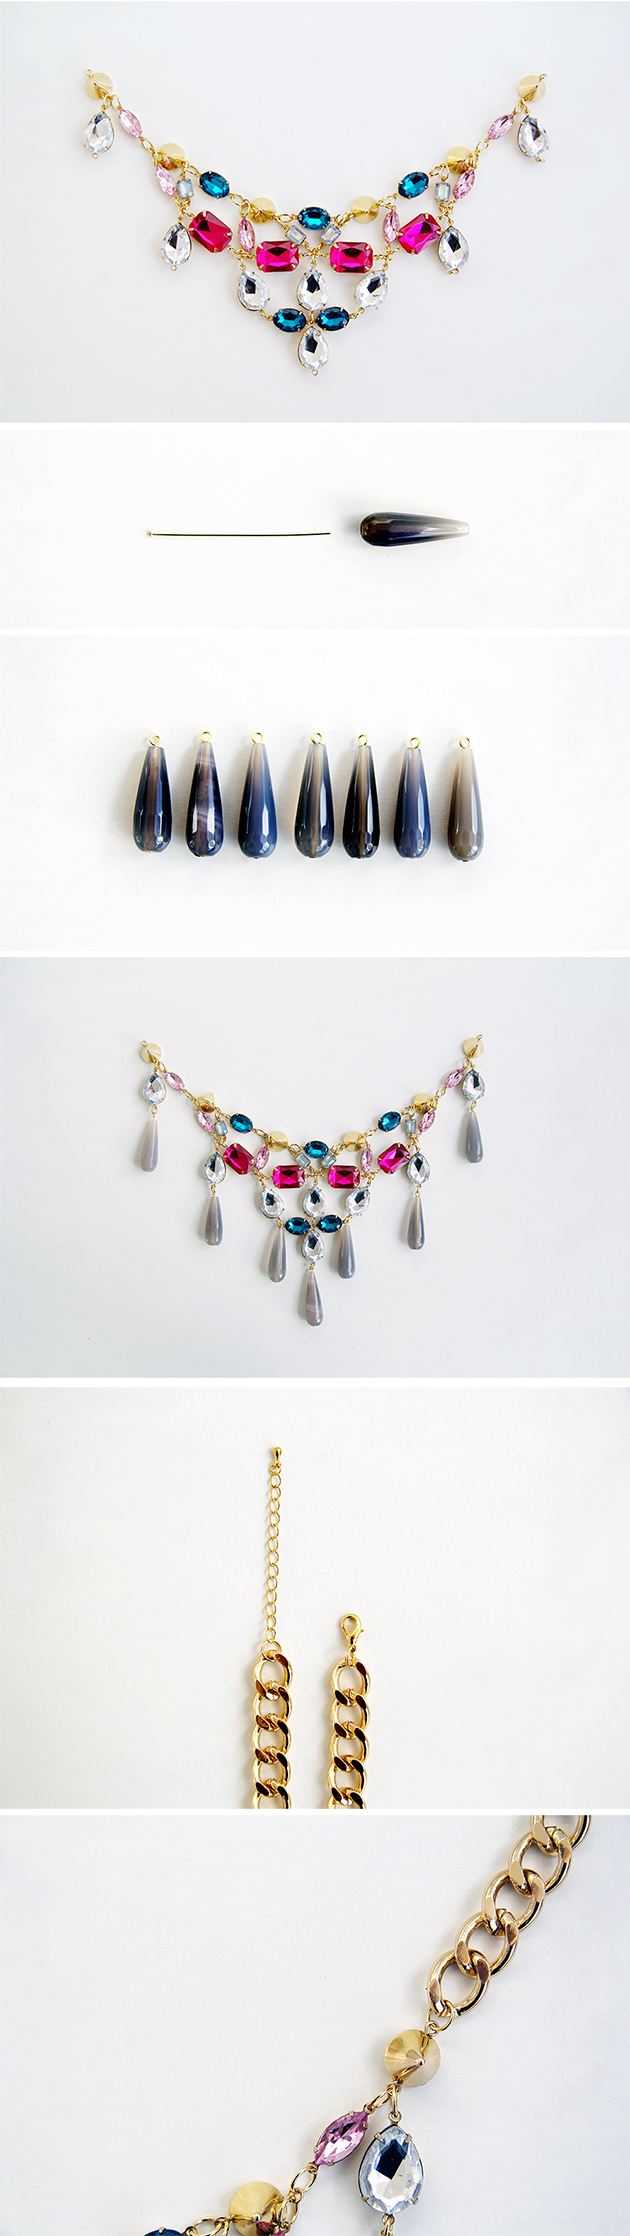 DIY The Ultimate Statement Gemstone Necklace | Fall For DIY